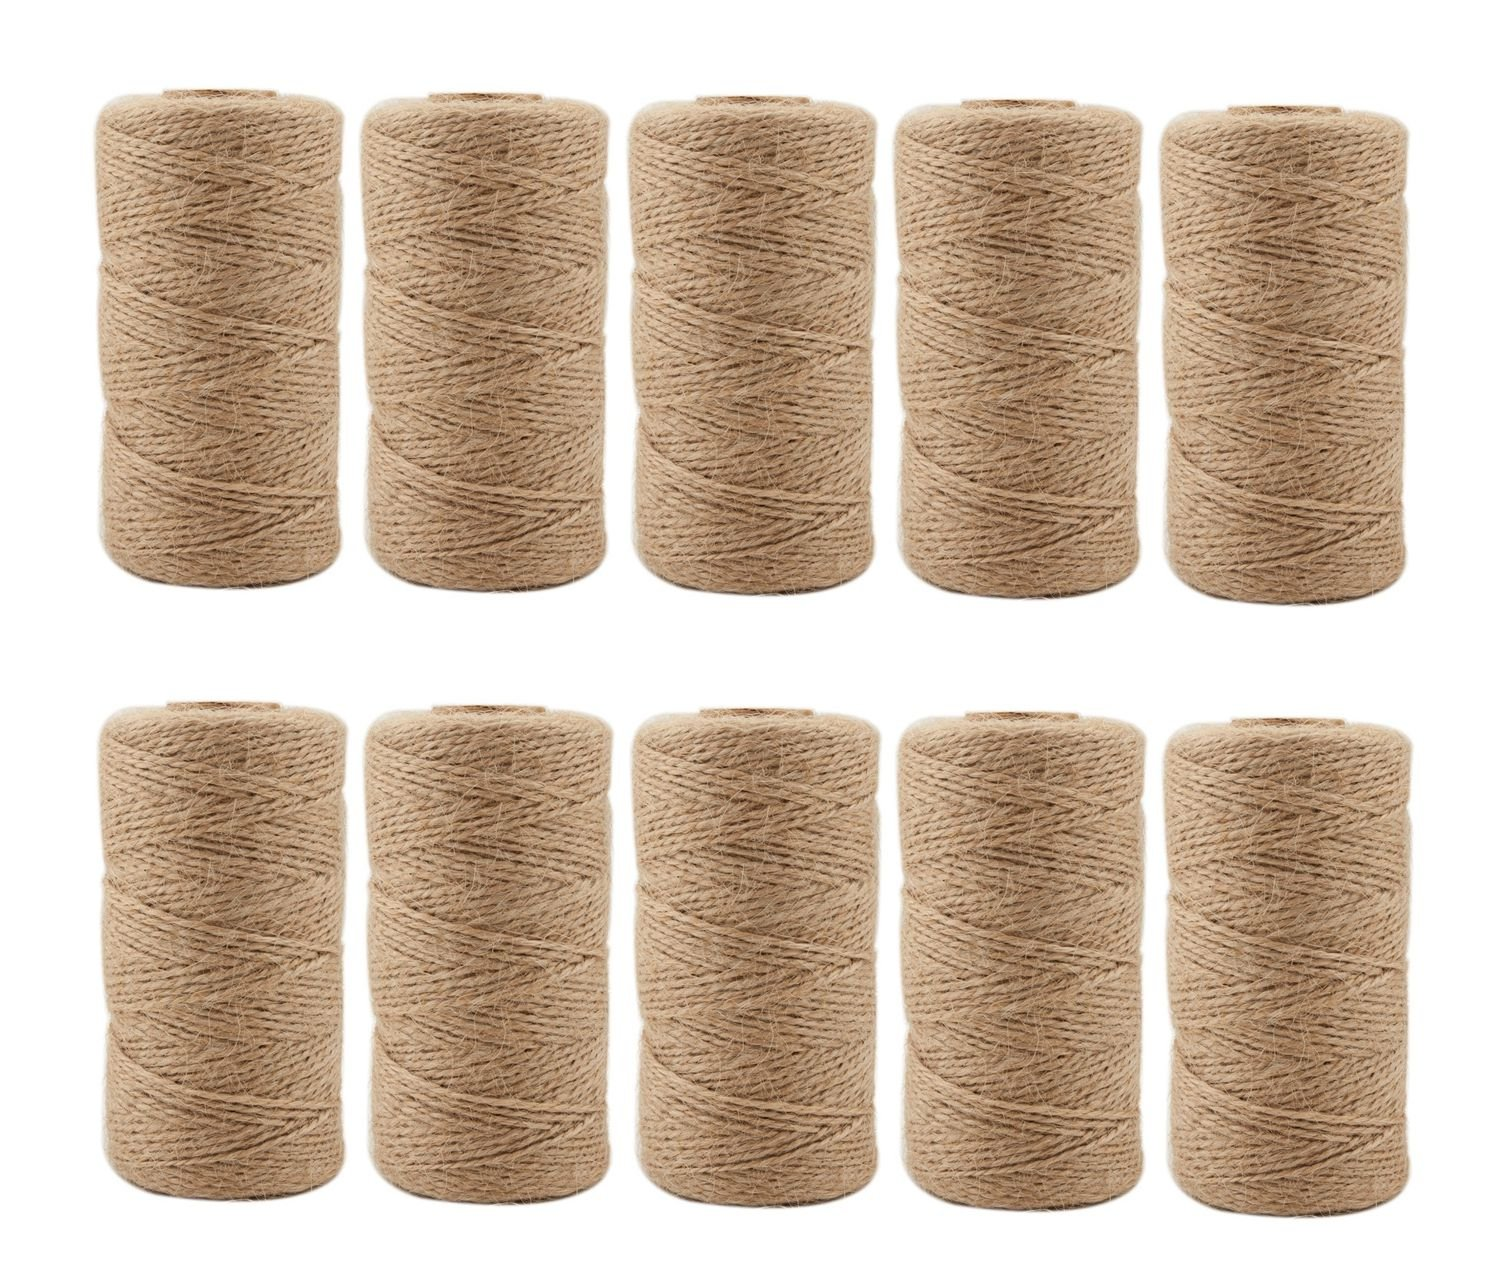 Natural Jute Twine 656 Feet 6 Ply 3mm Best Arts Crafts Gift Twine Christmas Twine Industrial Packing Materials Durable String for Gardening Applications (2 PCS x 328 Feet) ILIKEEC